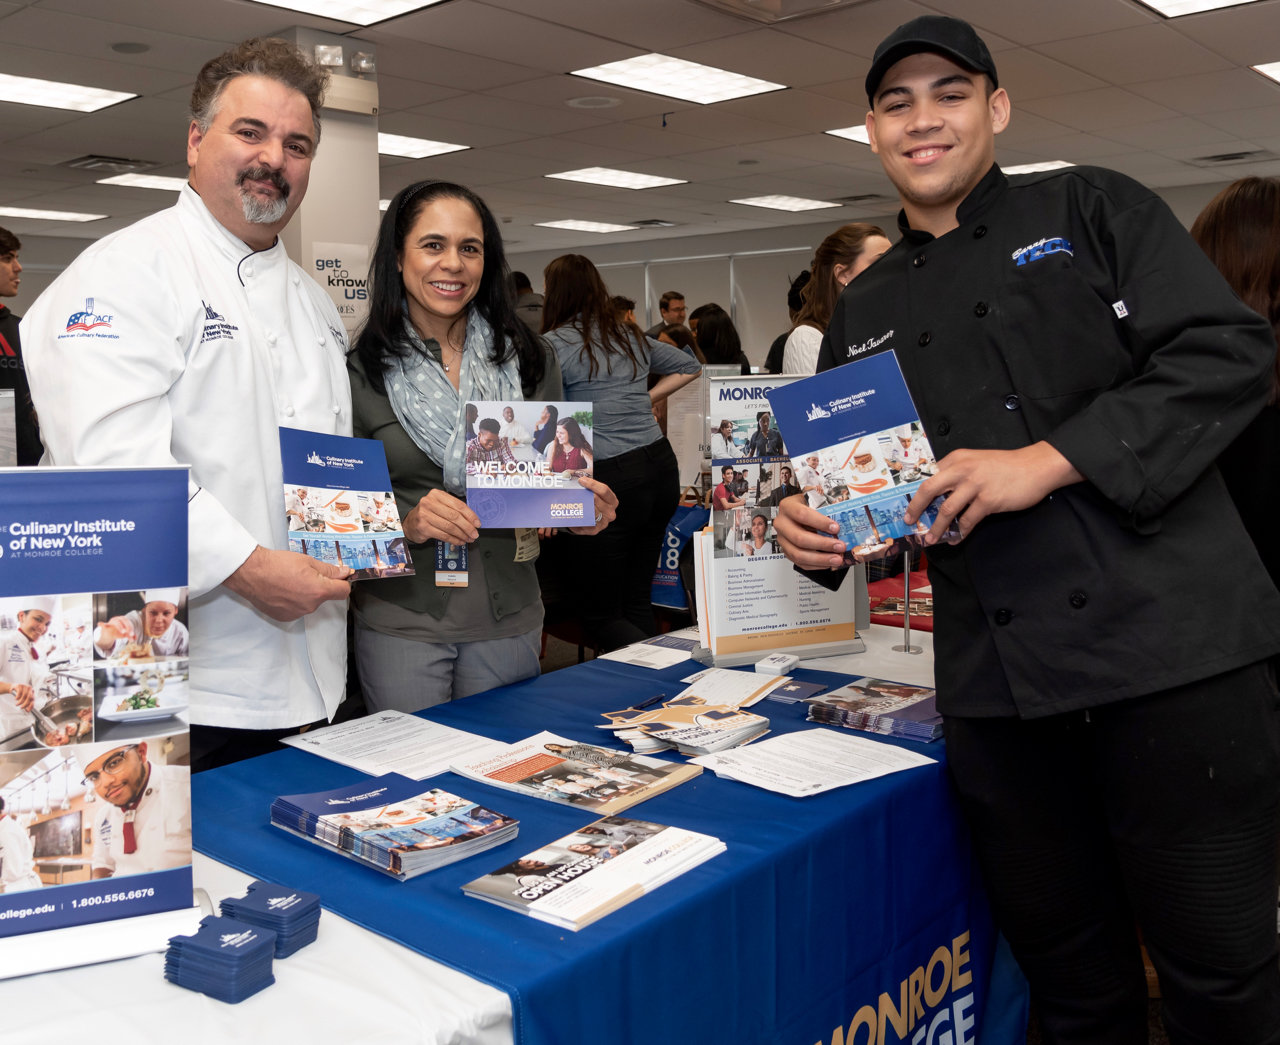 Noel Taverez, right, of the Malverne Union Free School District, got to meet with reps from the Culinary Institute of New York.